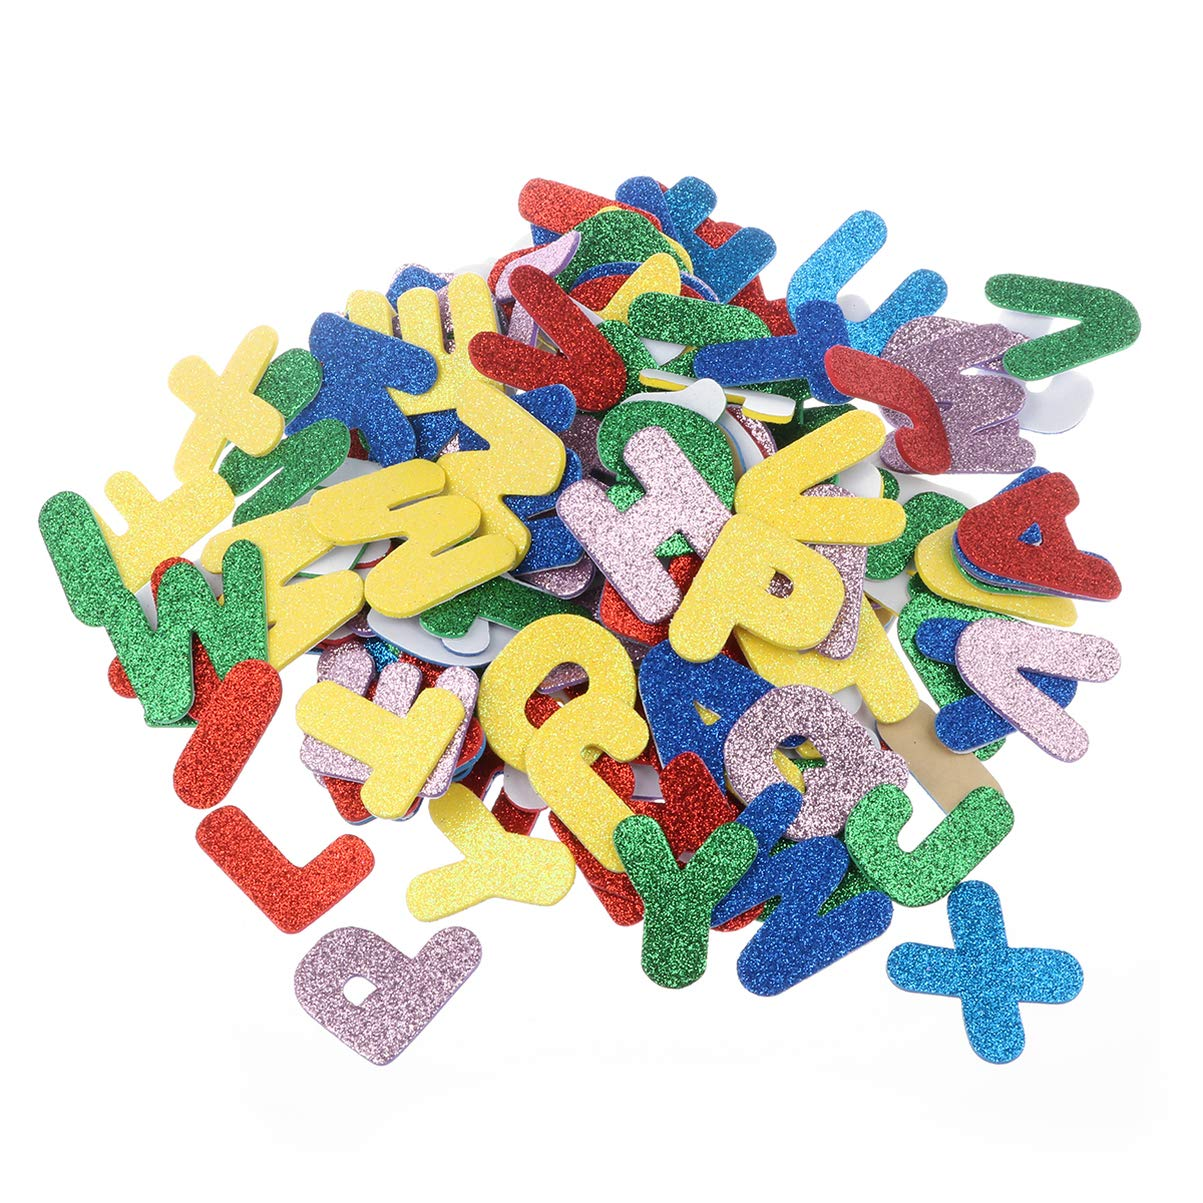 SUPVOX 150 Pcs Foam Letter Stickers, Multicolored Self-Adhesive Glitter Foam Letters, 1.31.5 Inch Foam Alphabet for Kids DIY Craft